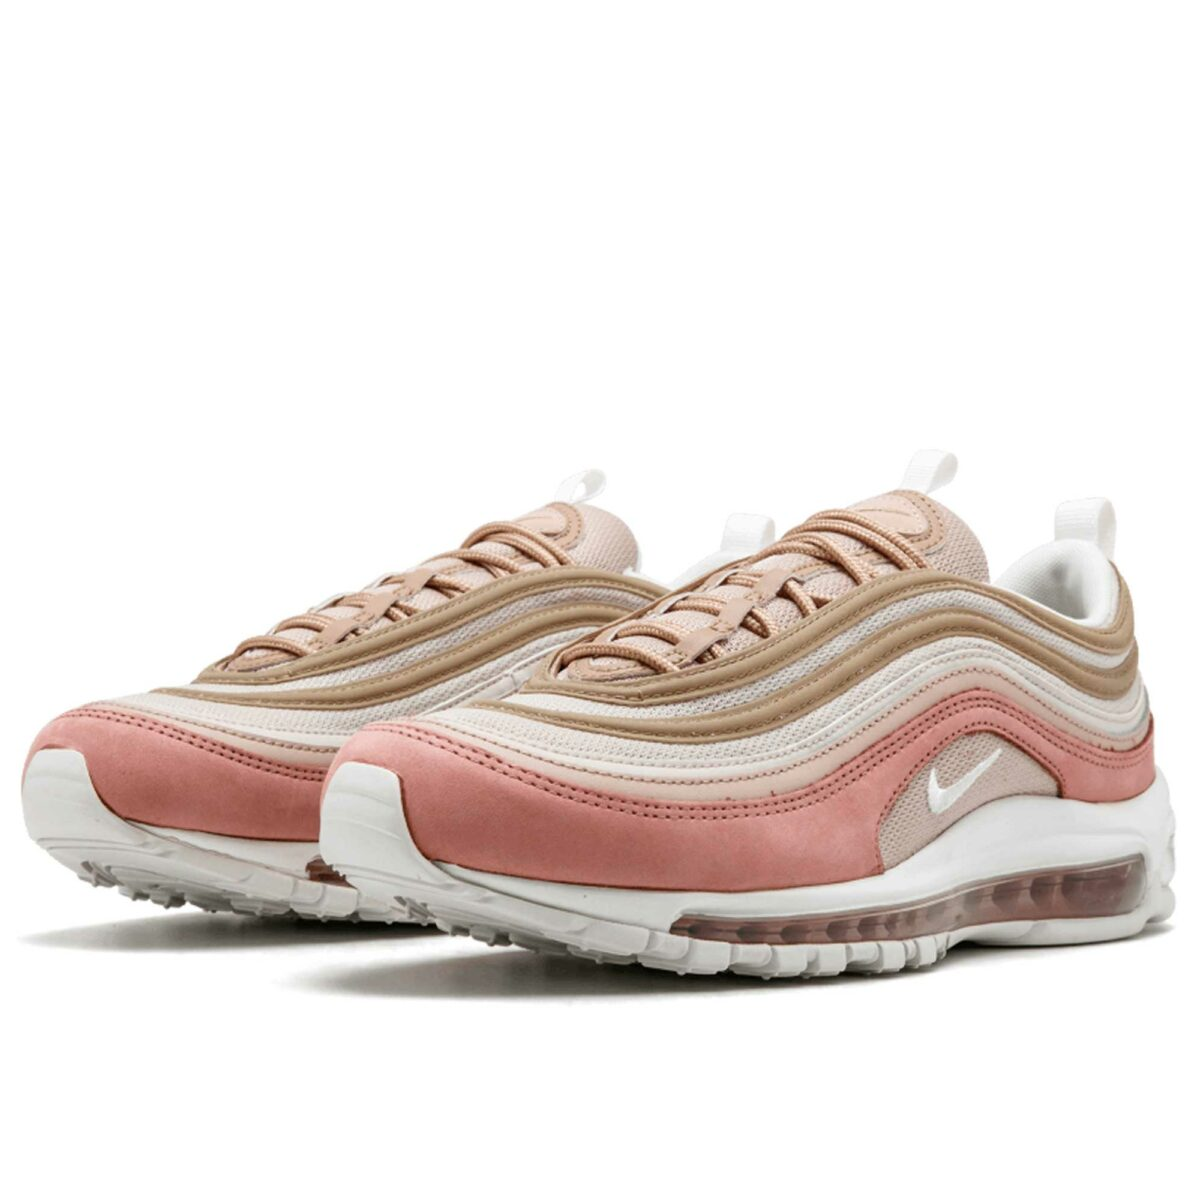 nike air max 97 premium particle beige summit white 312834_200 купить